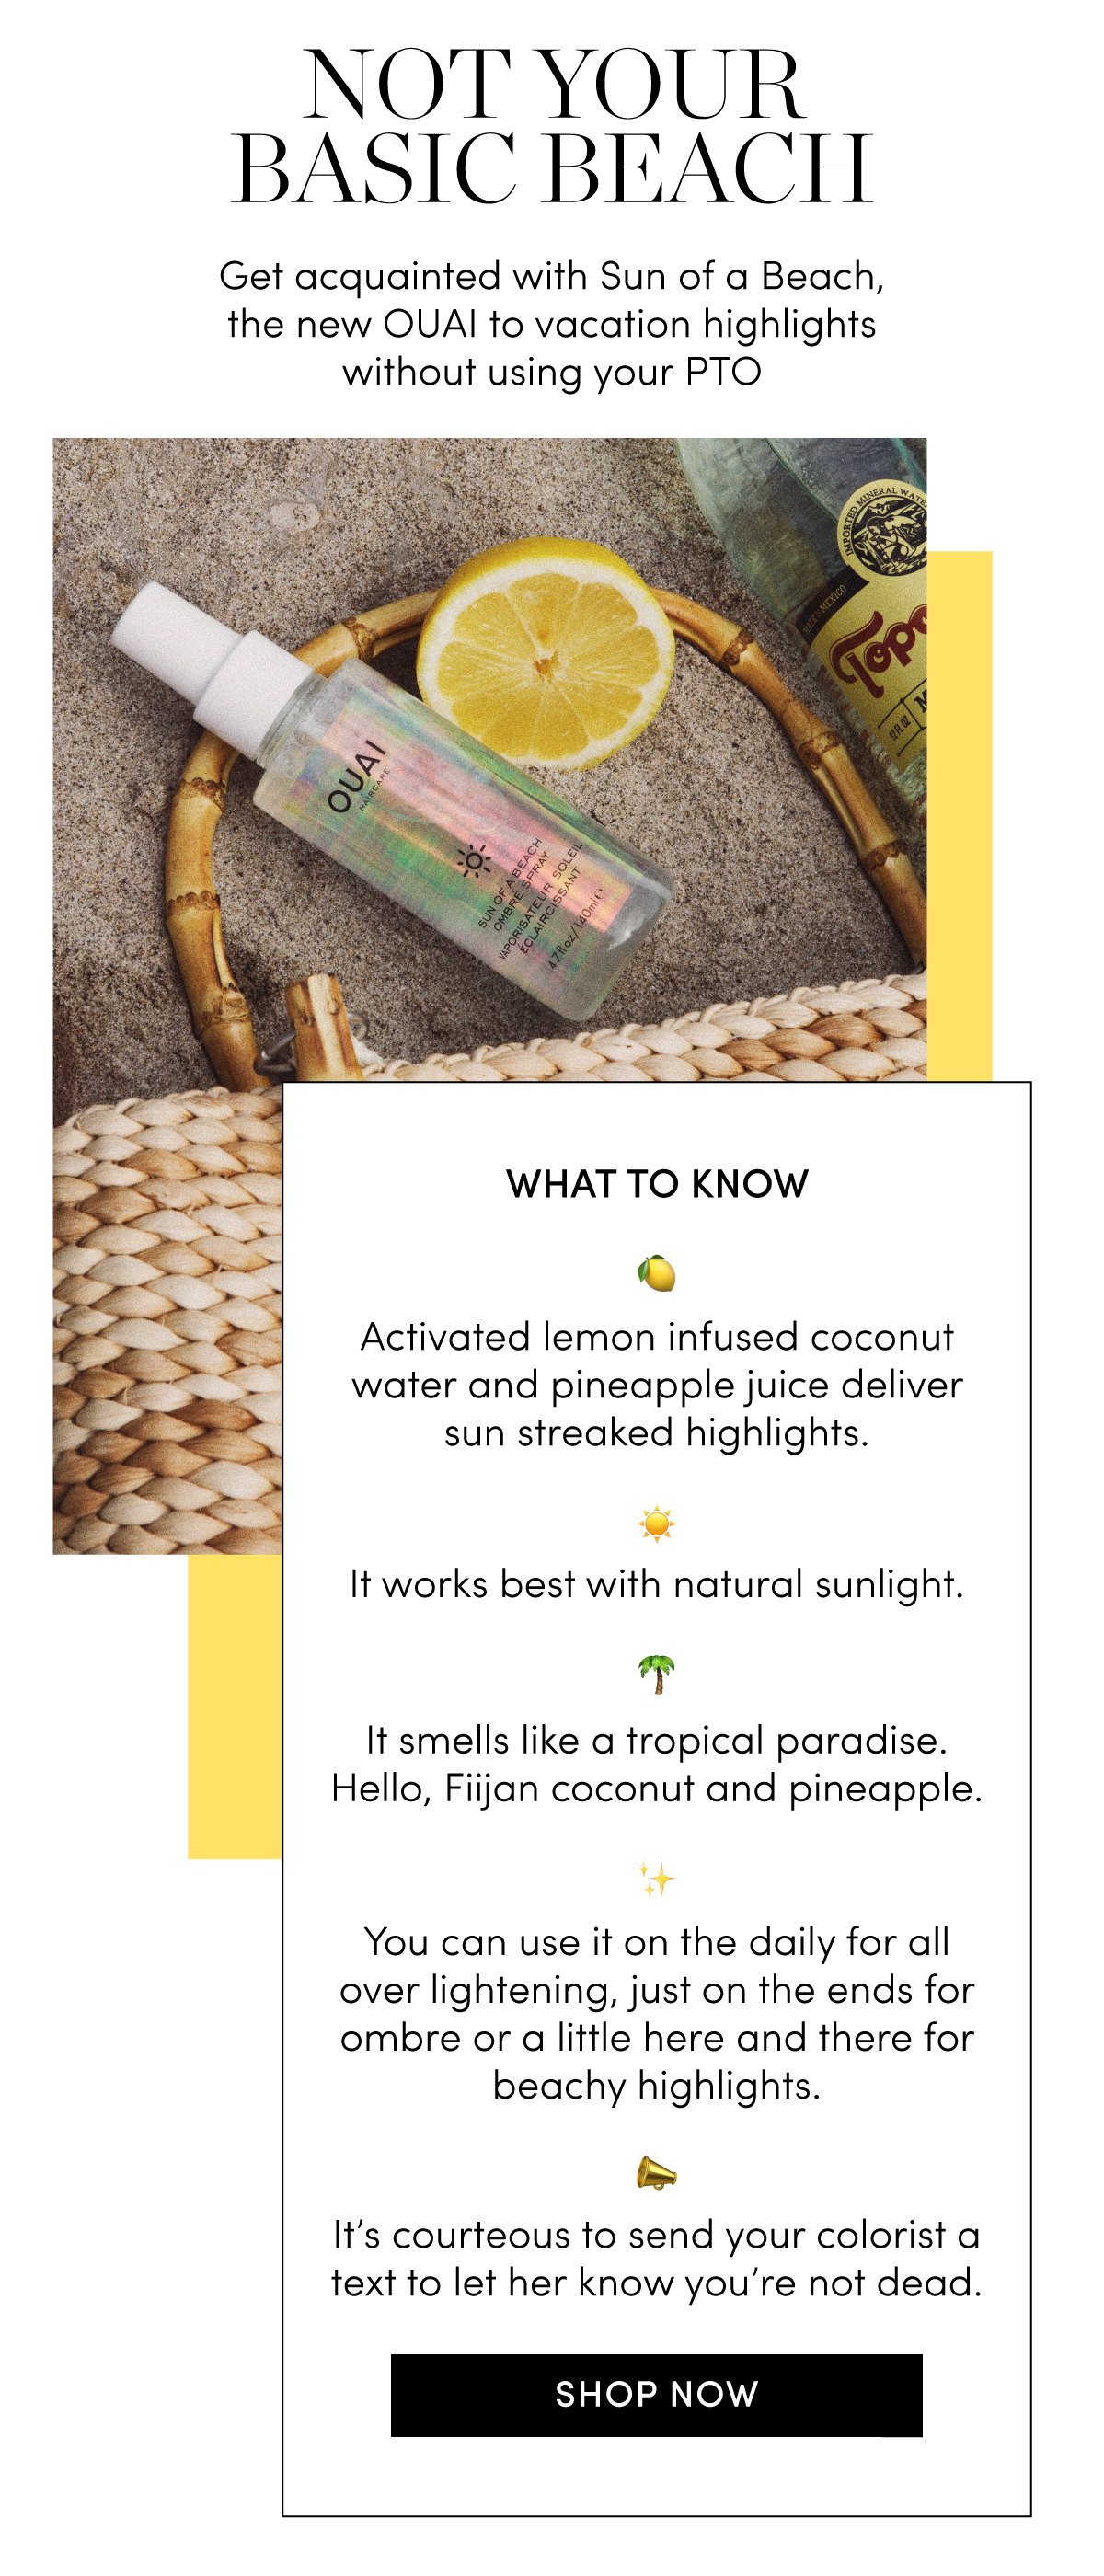 NOT YOUR BASIC BEACH: Get acquainted with Sun of a Beach, the new OUAI to vacation highlights without using your PTO.